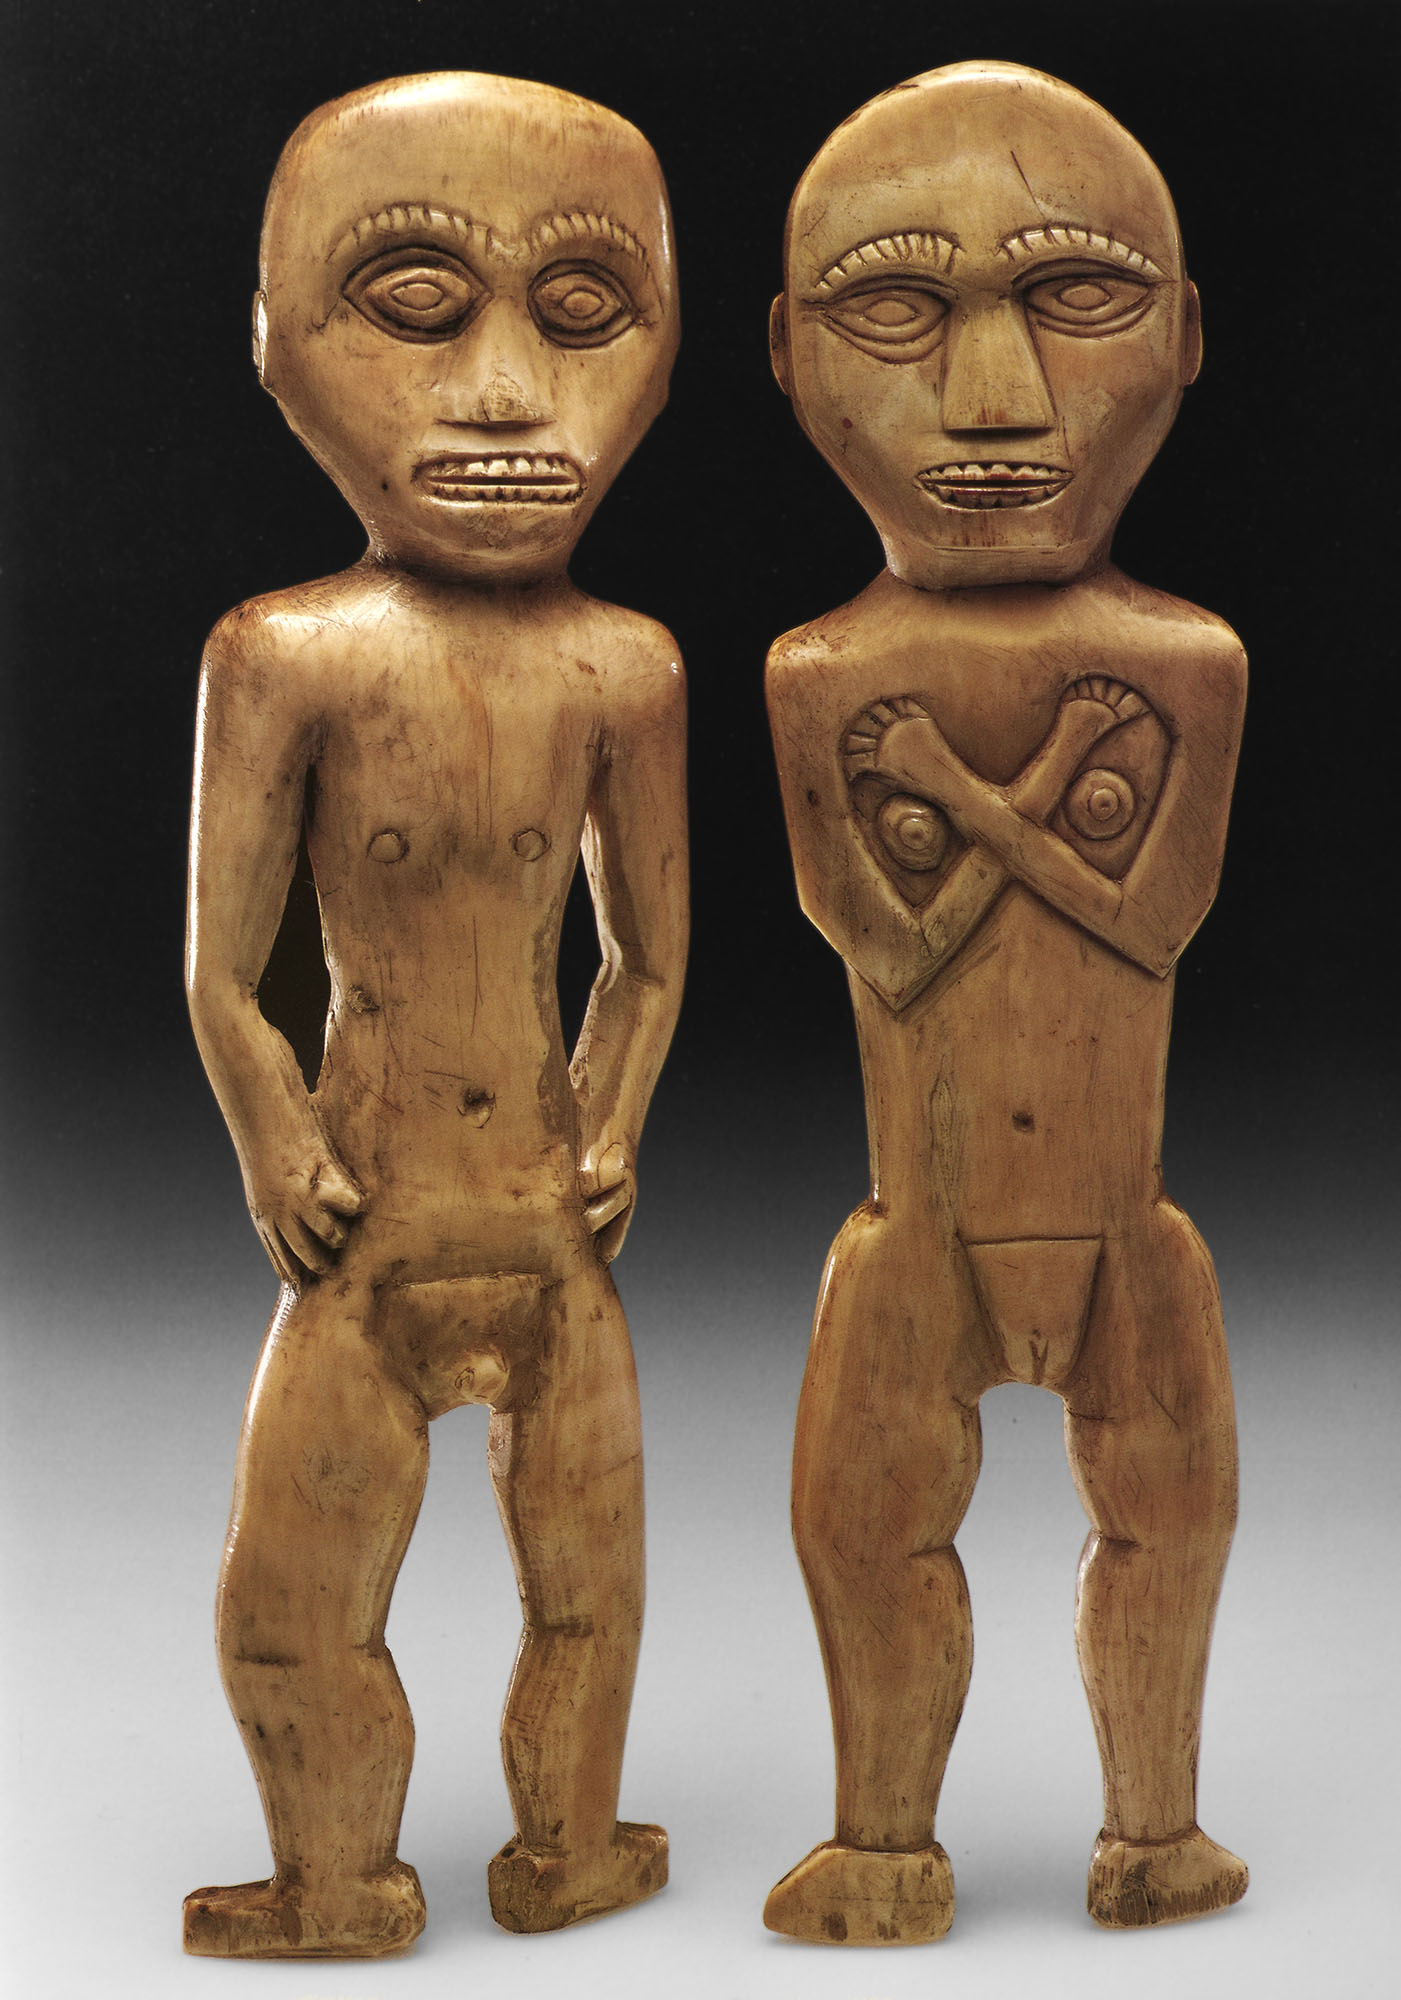 Figurative Carvings from Minahasa © Nationaal Museum van Wereldculturen | The Netherlands